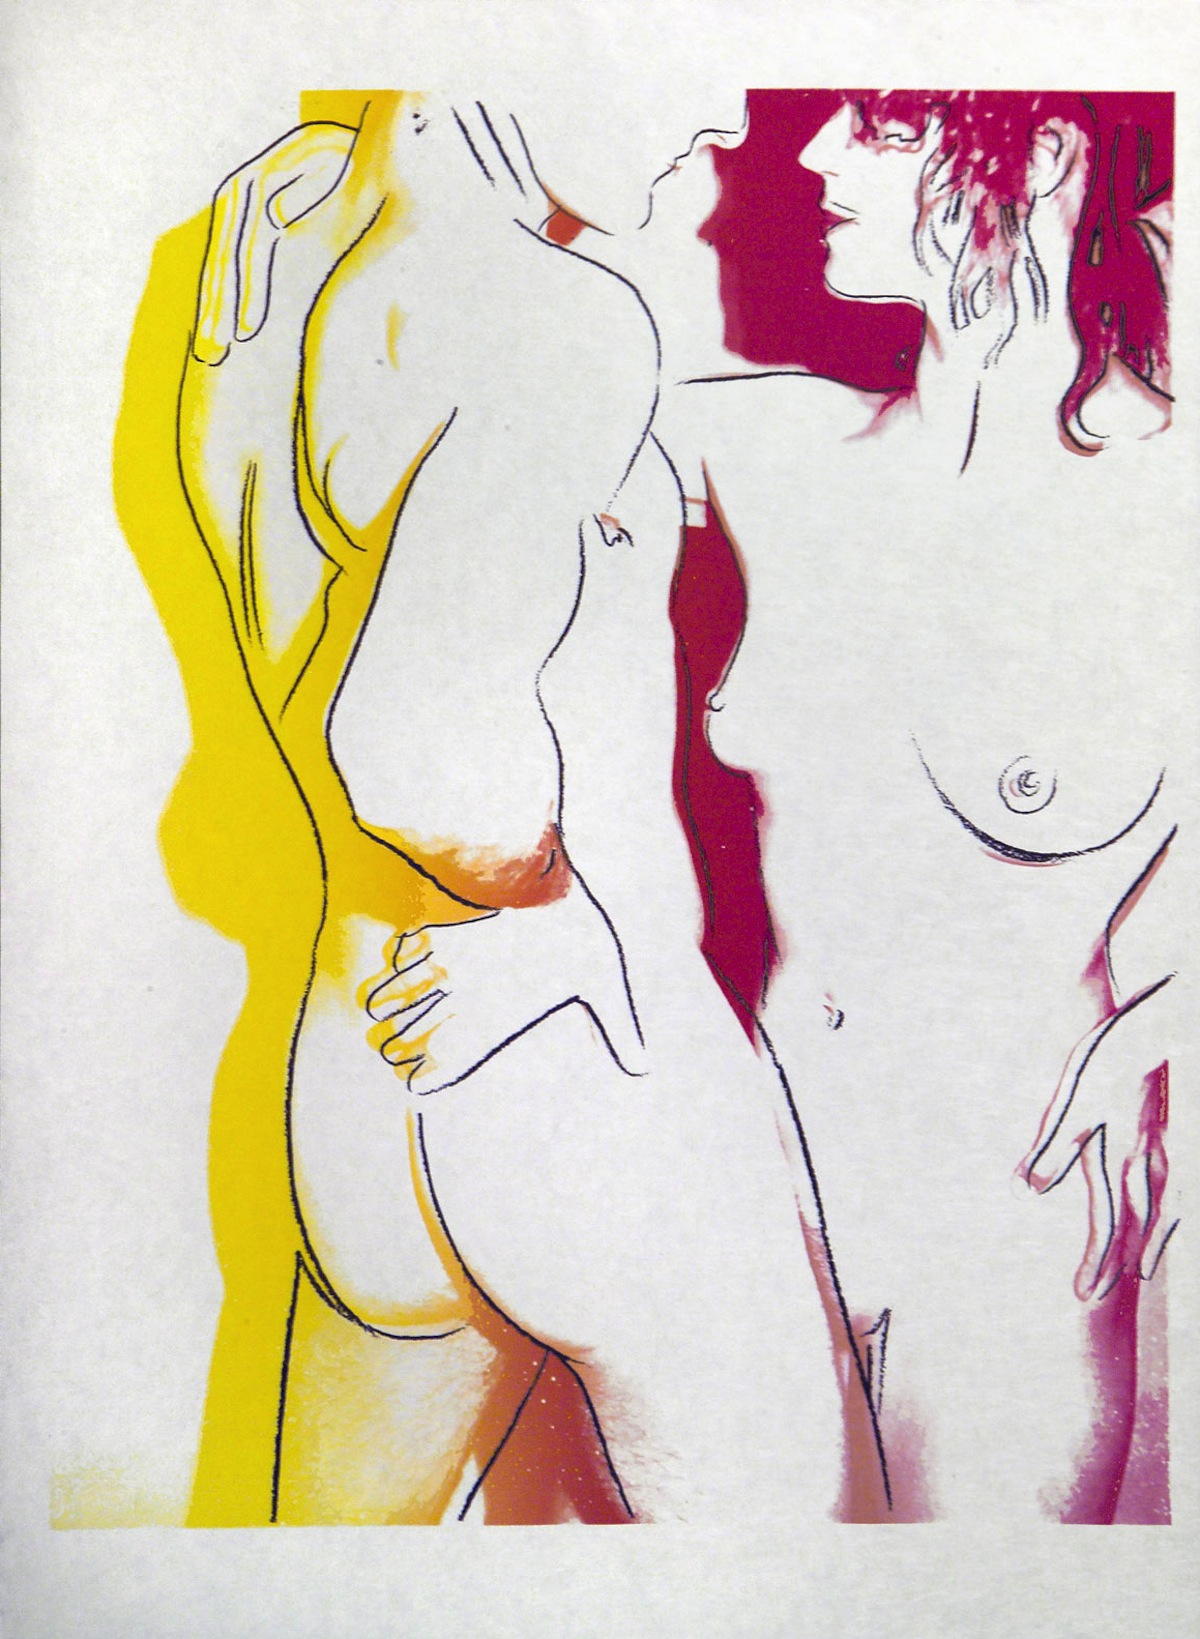 Love 311 by Andy Warhol